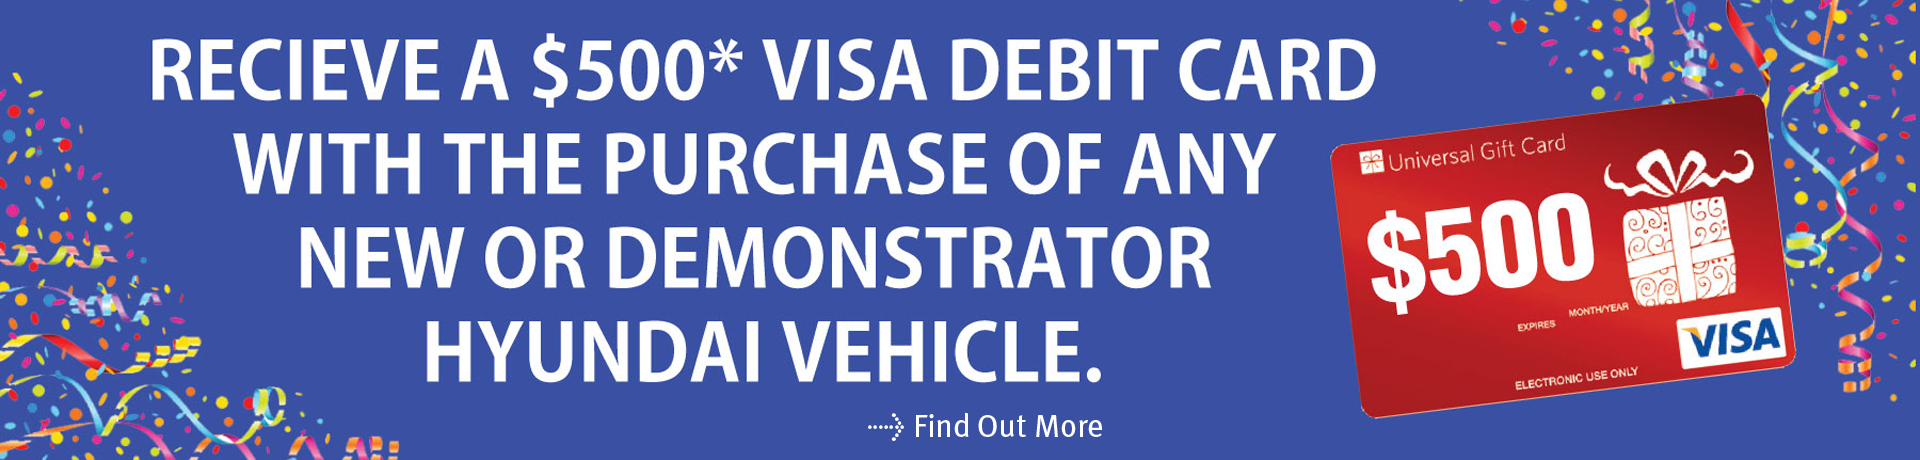 Hyundai Visa Debit Offer